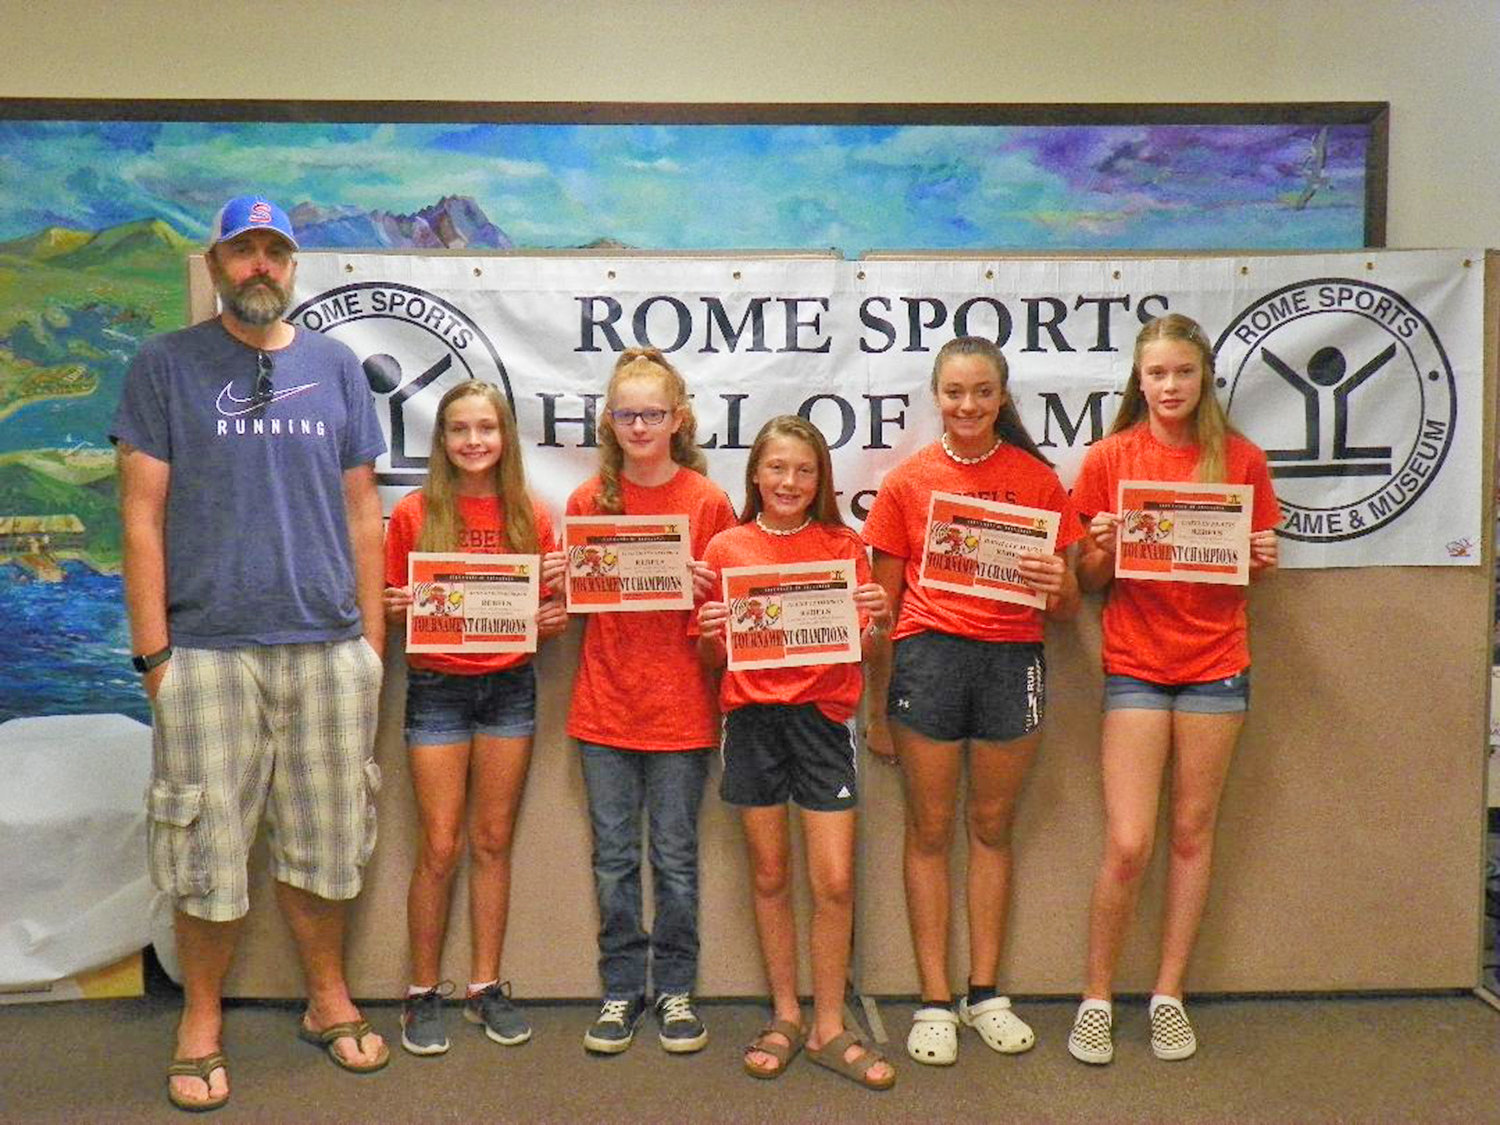 The Rebels team won the Rome Girls' Youth Softball Spring 12U Tournament championship.